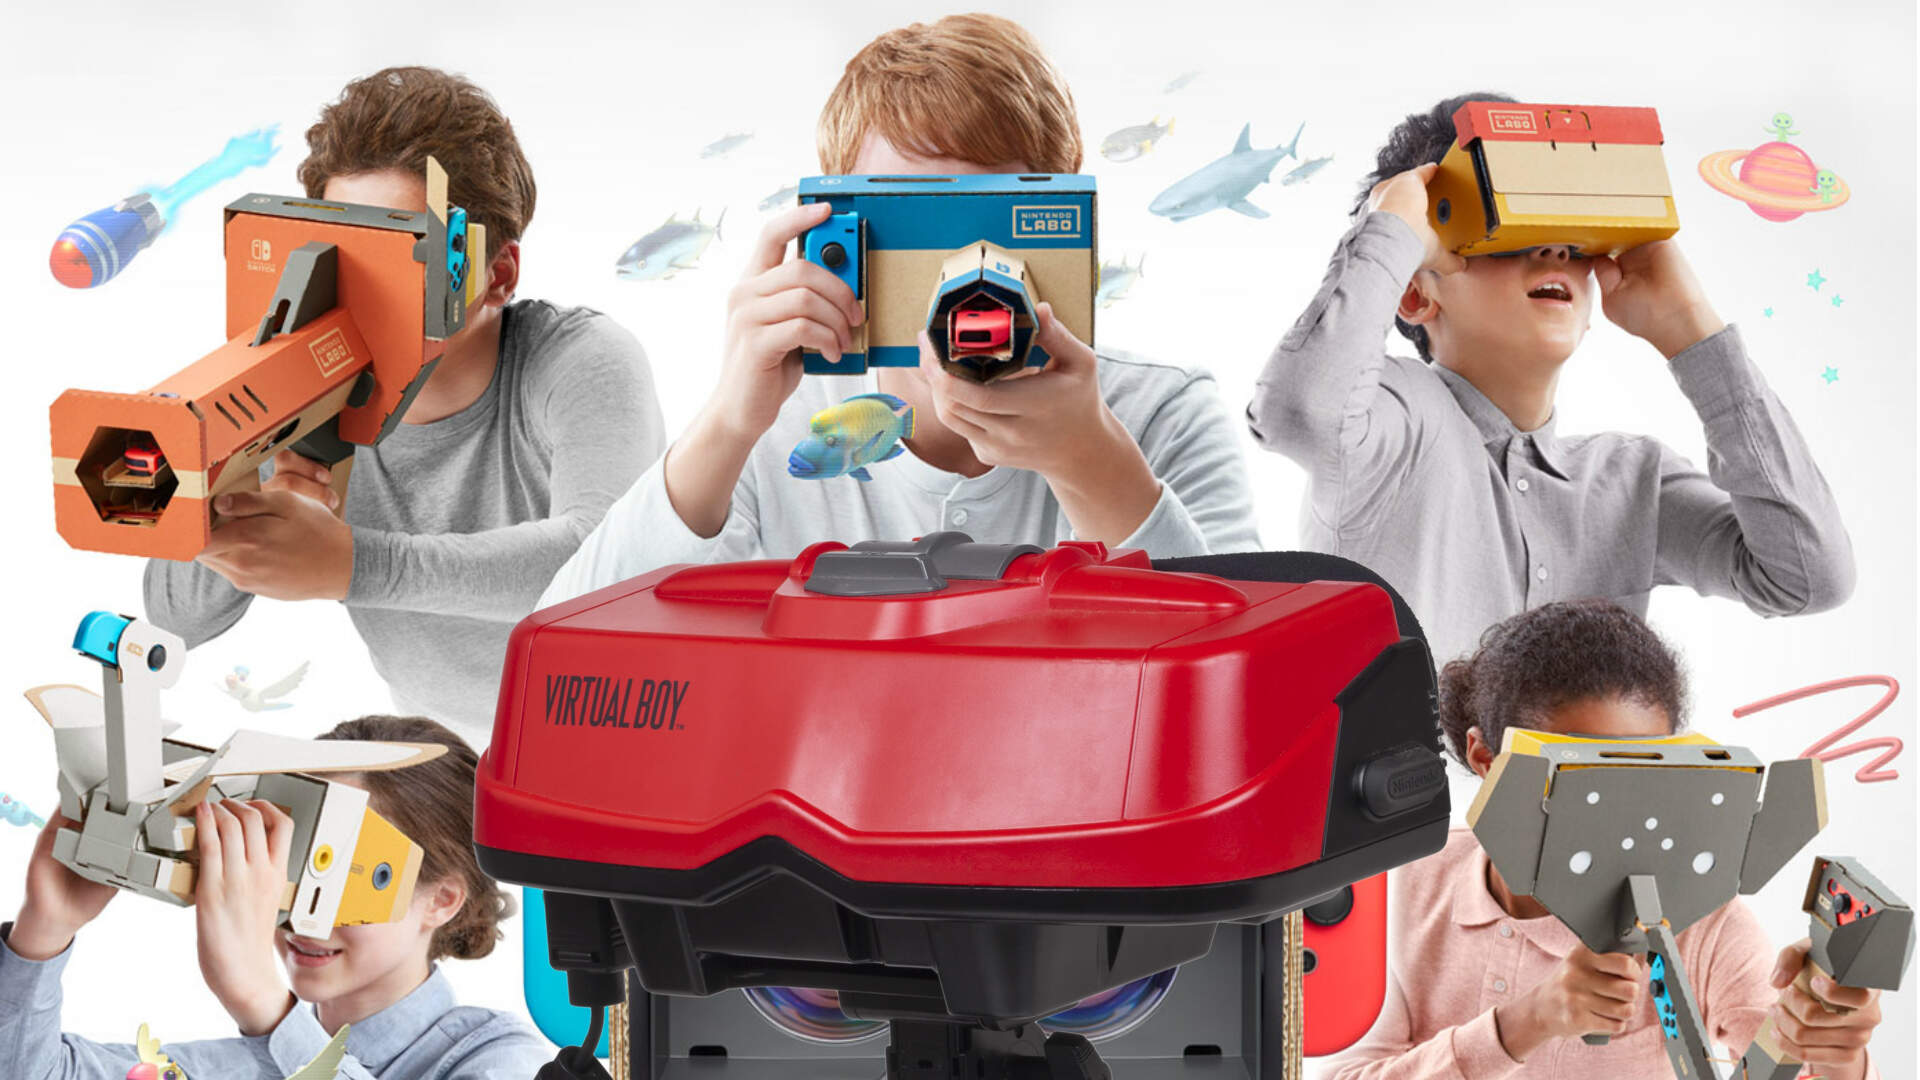 Virtual Boy Easter Egg Hiding in Nintendo Labo VR Kit